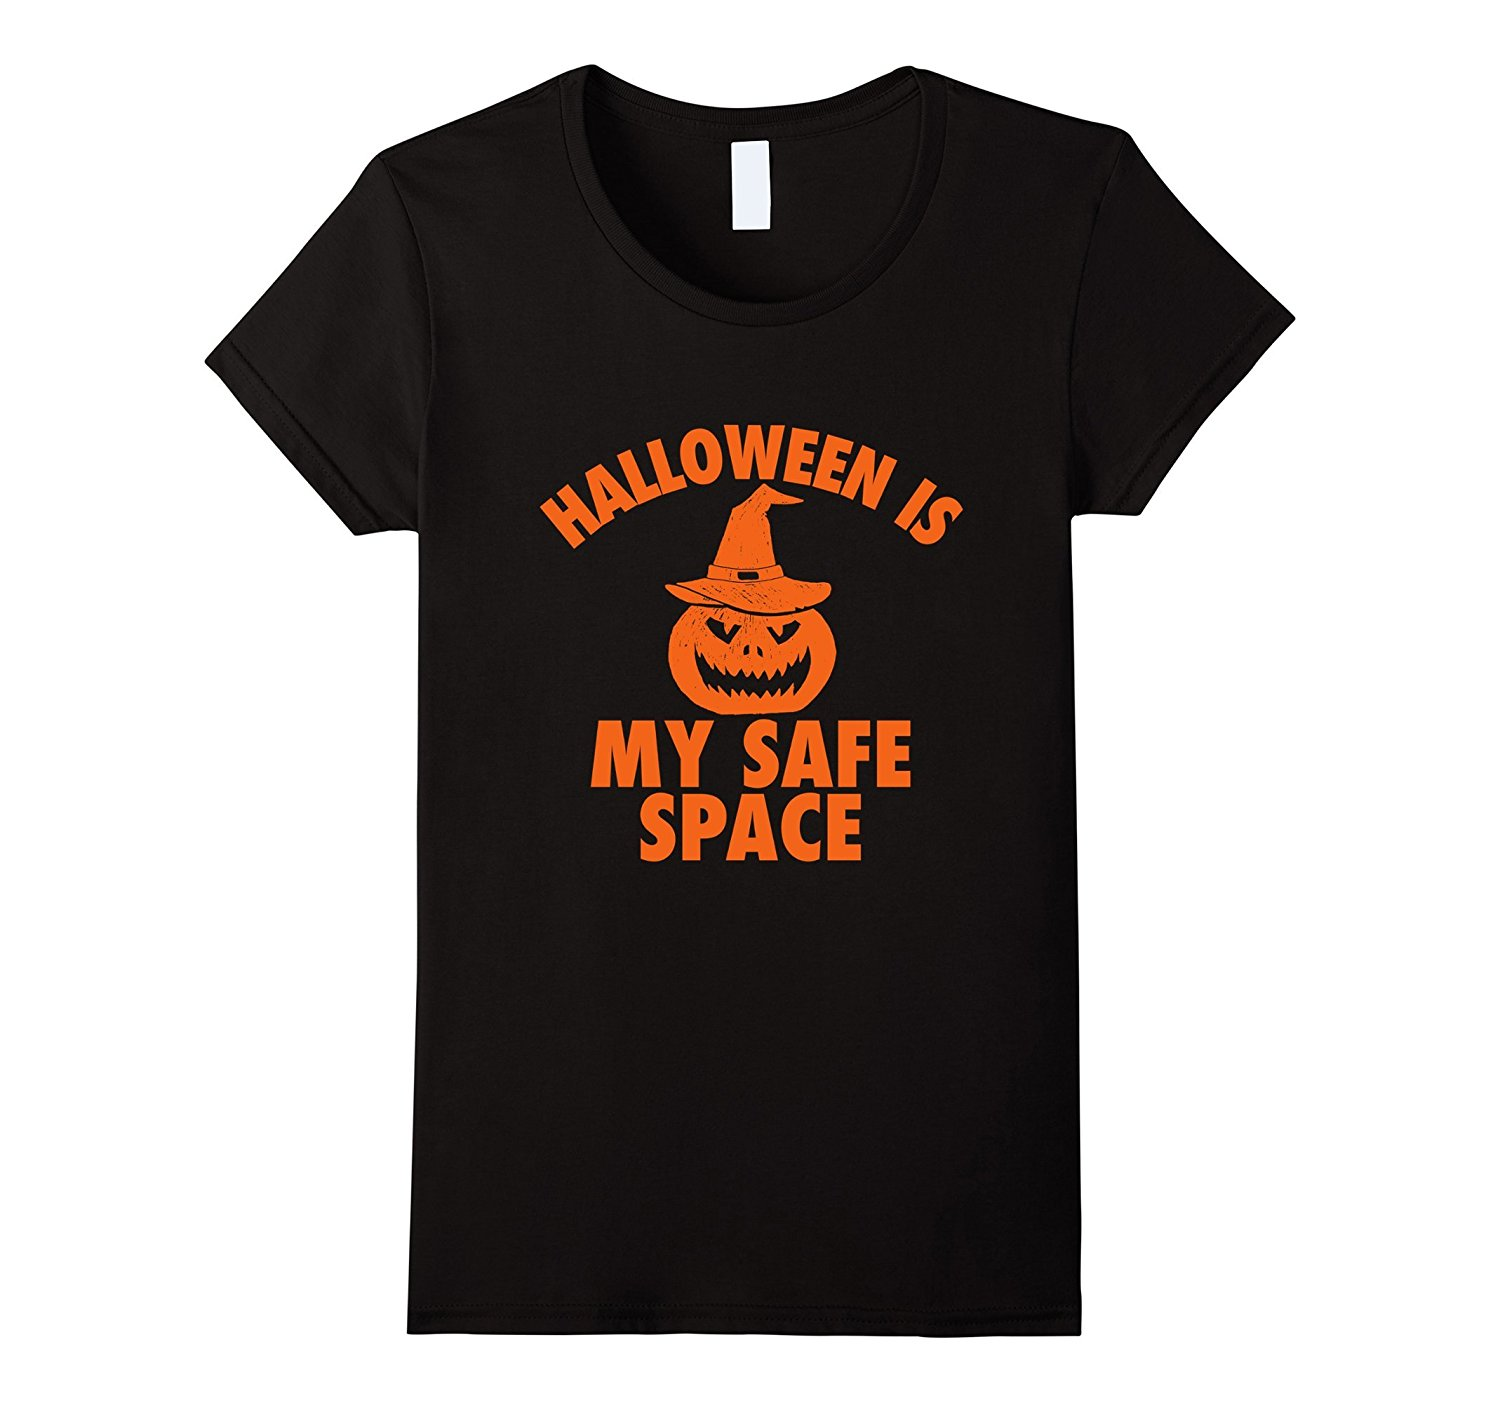 Halloween Is My Safe Space - Funny Pumpkin T Shirt Summer Casual Cotton Tops Tees Fashion Crazy Women Shirt Top Tee ...